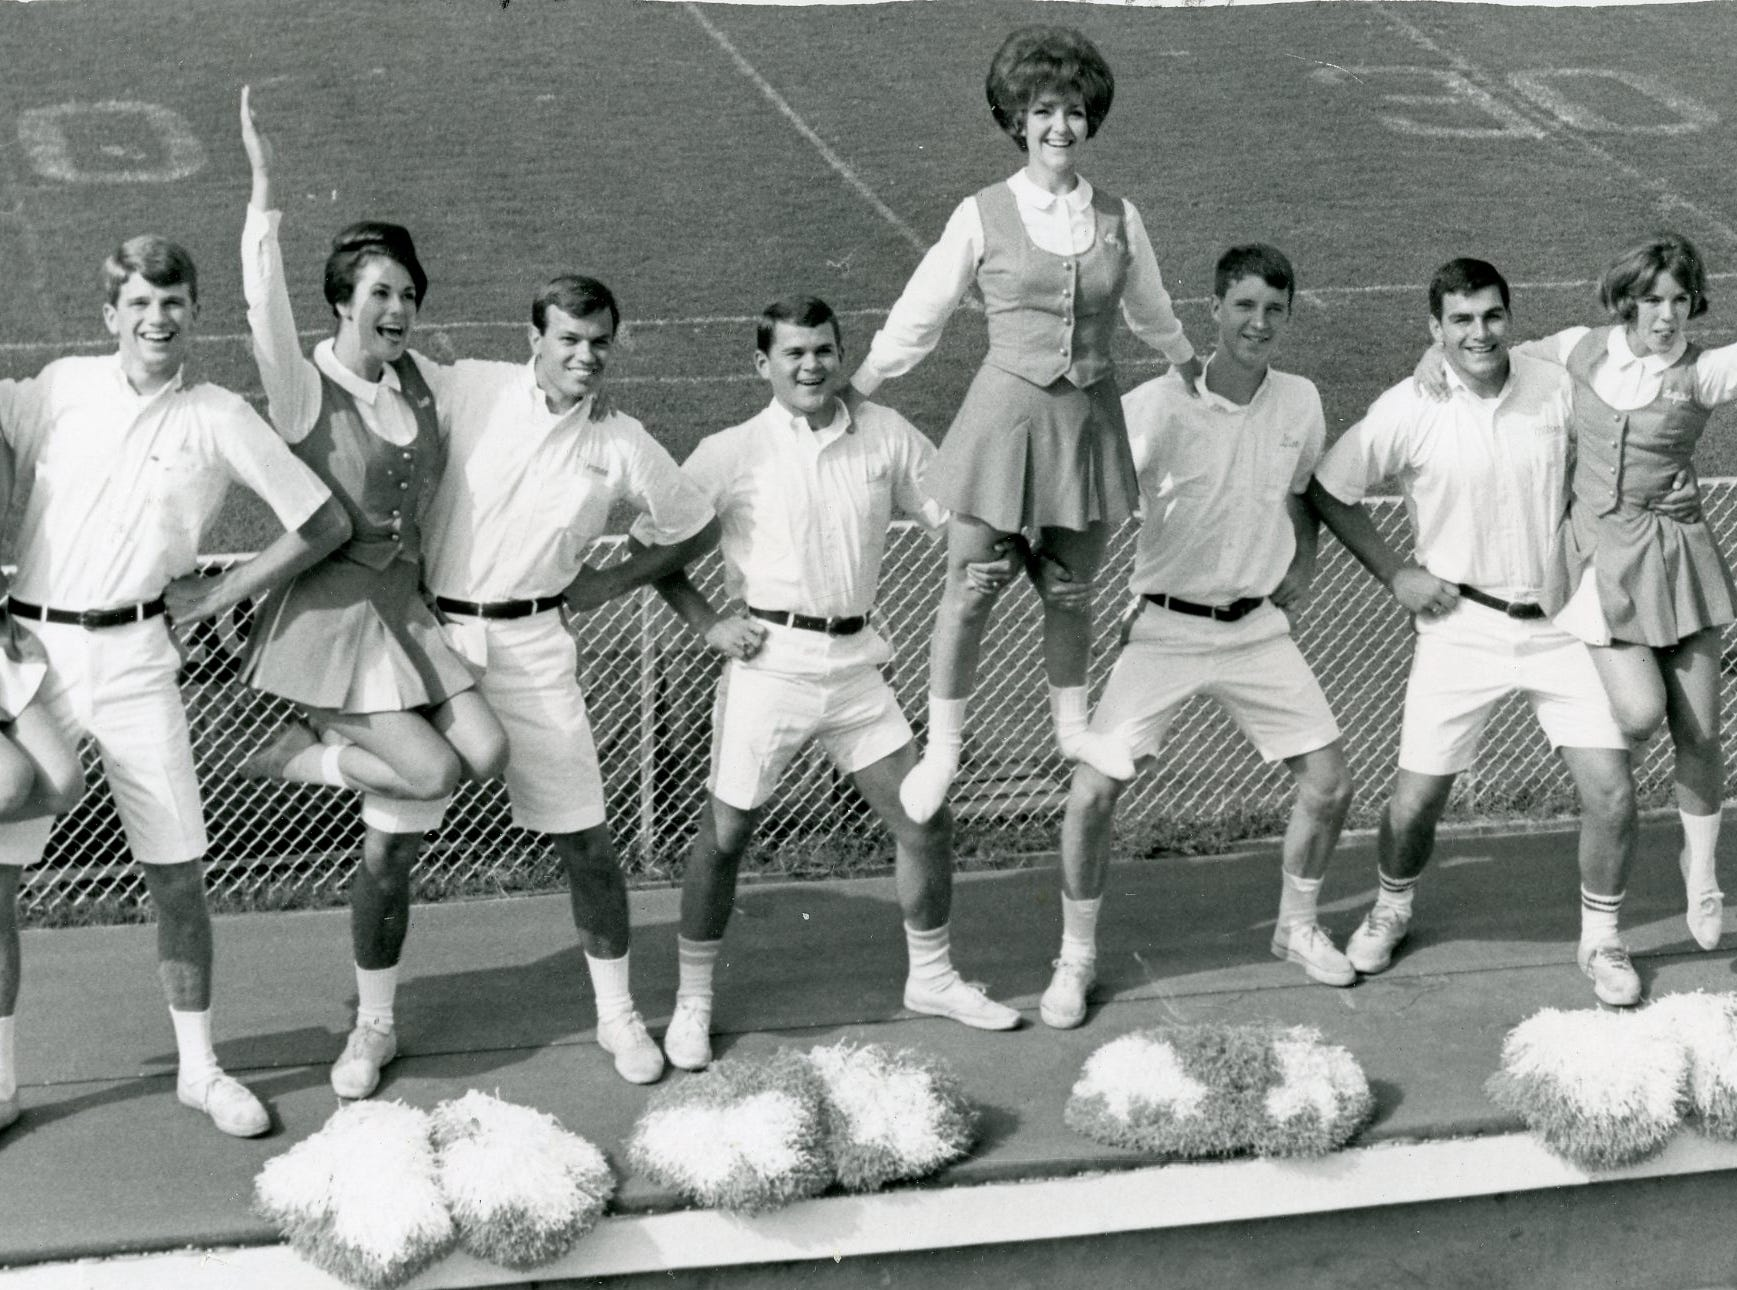 Stunting for the crowd in September 1965 were UT cheerleaders Mary Huddleston, Jim Osteen, Fran McClain, Norman Estep, Steve Hambaugh, Mary Gwyn, Glen Smotherman, Milton Ellis, Betty Gail Cooper, Terry Abernathy and Arden Sampson.